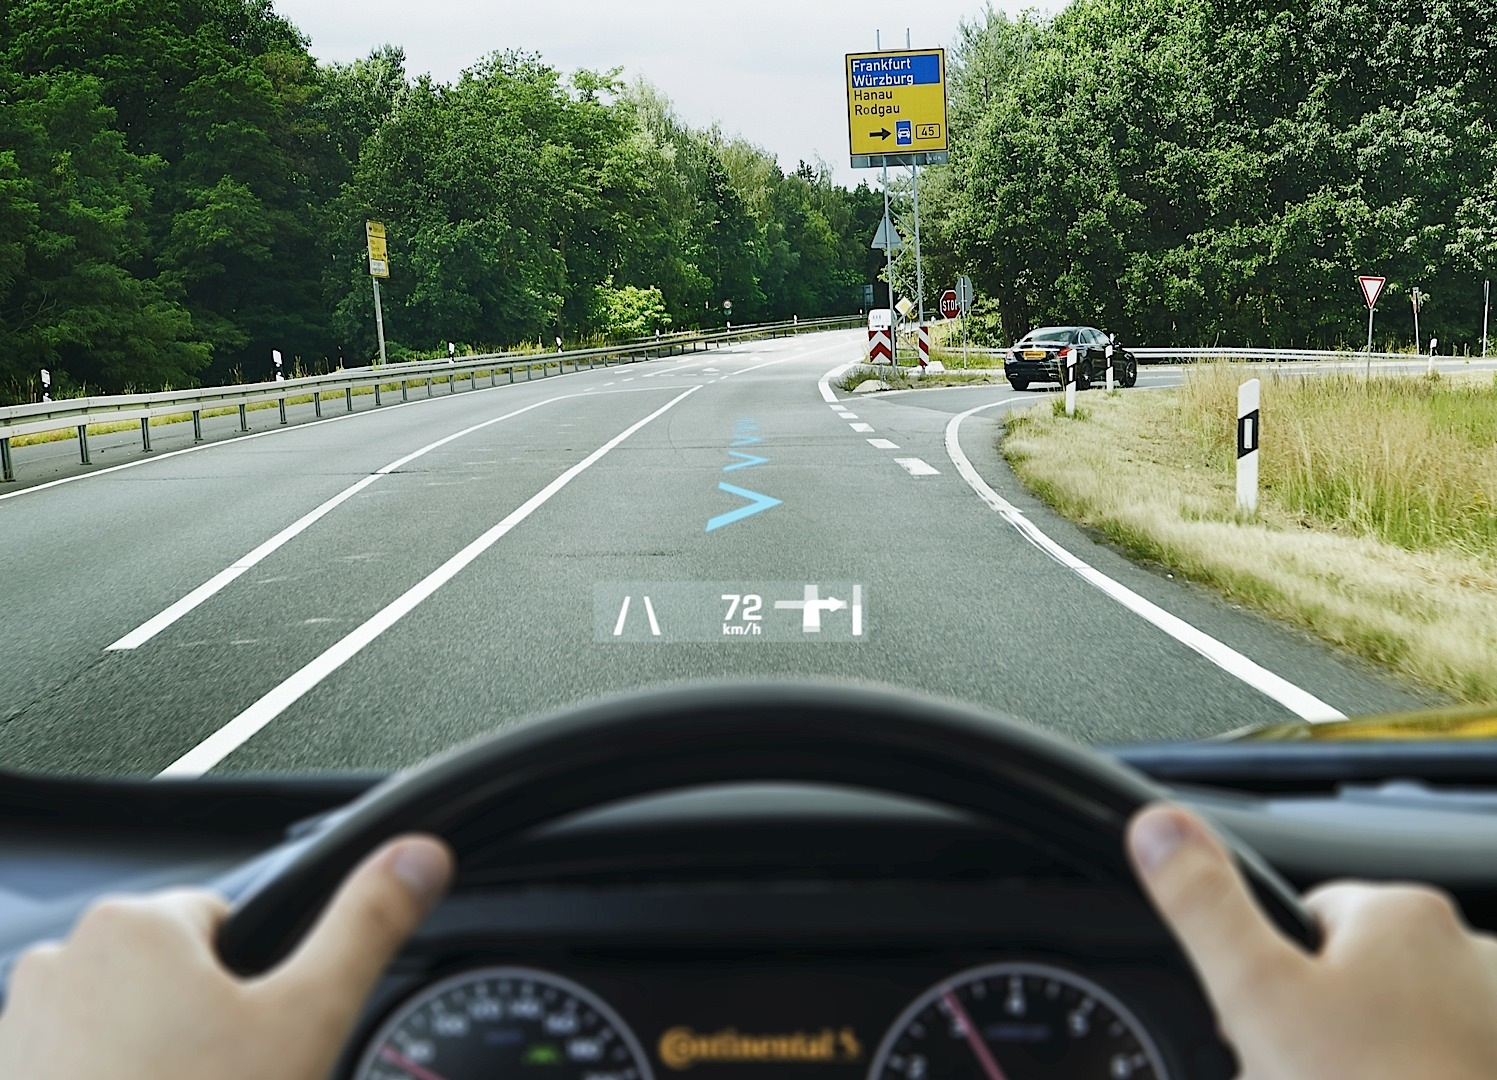 370z Nismo Specs >> Continental Shows Its Augmented Reality Head-up Display ...